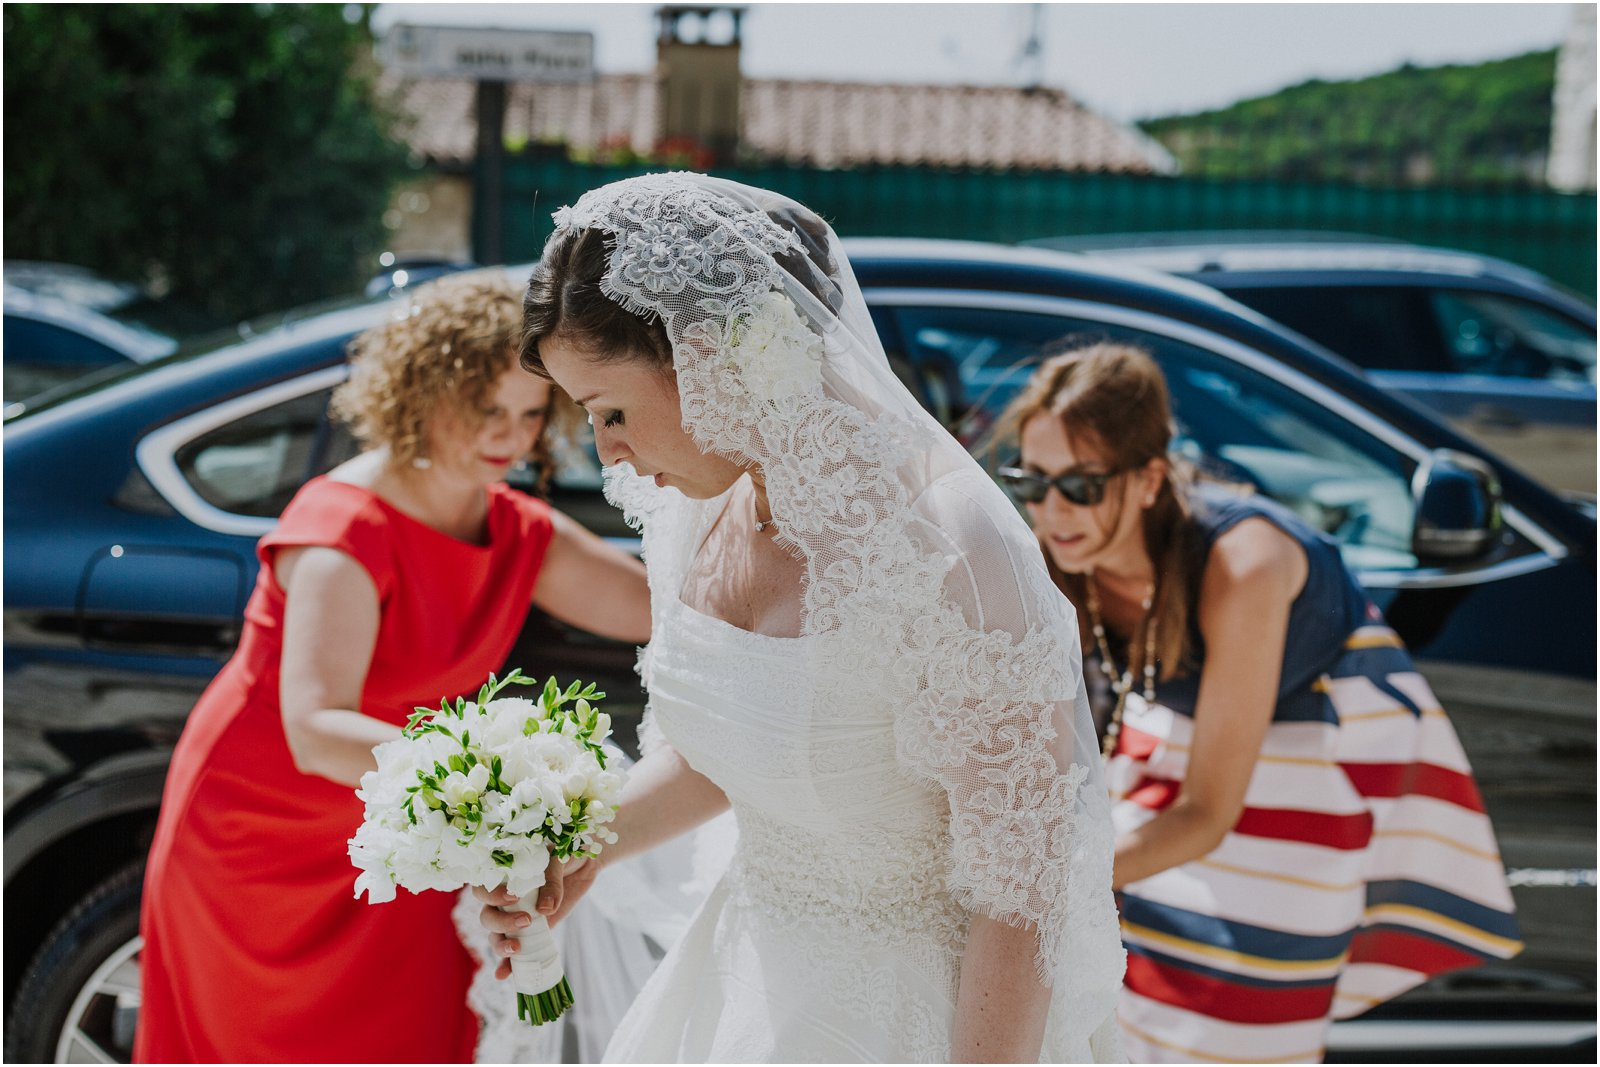 veronasposi foto e video matrimonio verona_0565